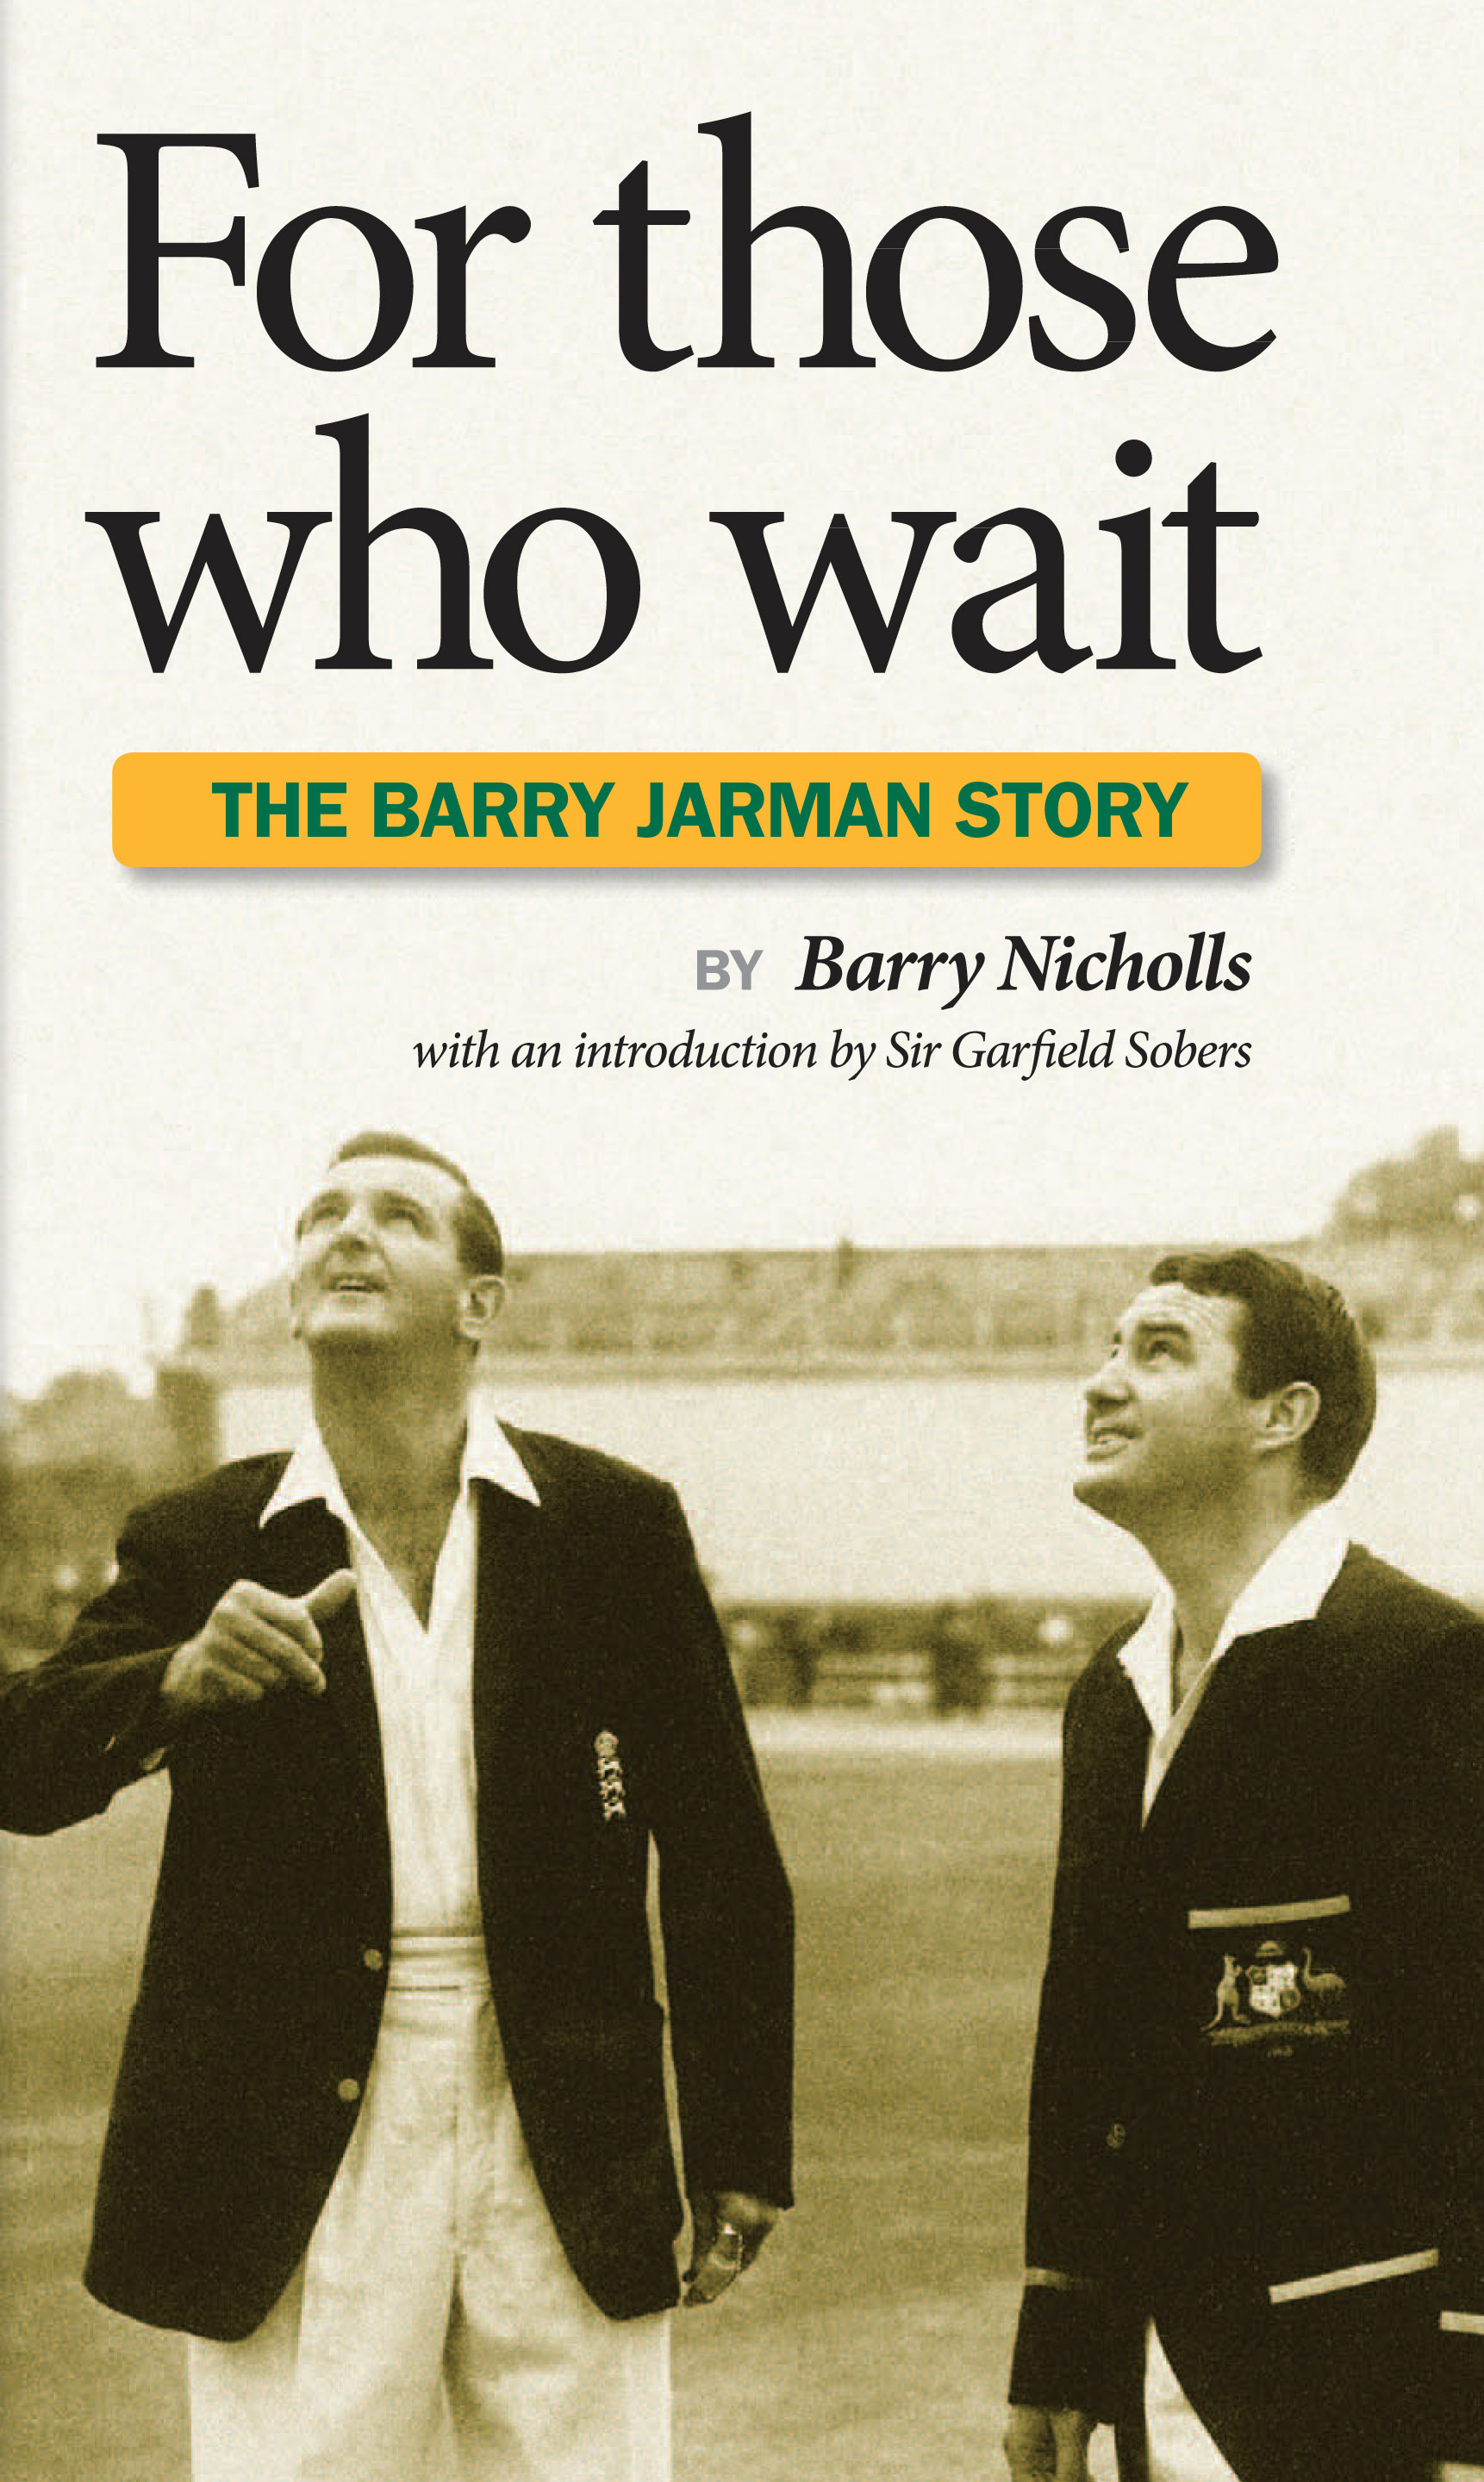 For those who wait by Barry Nicholls